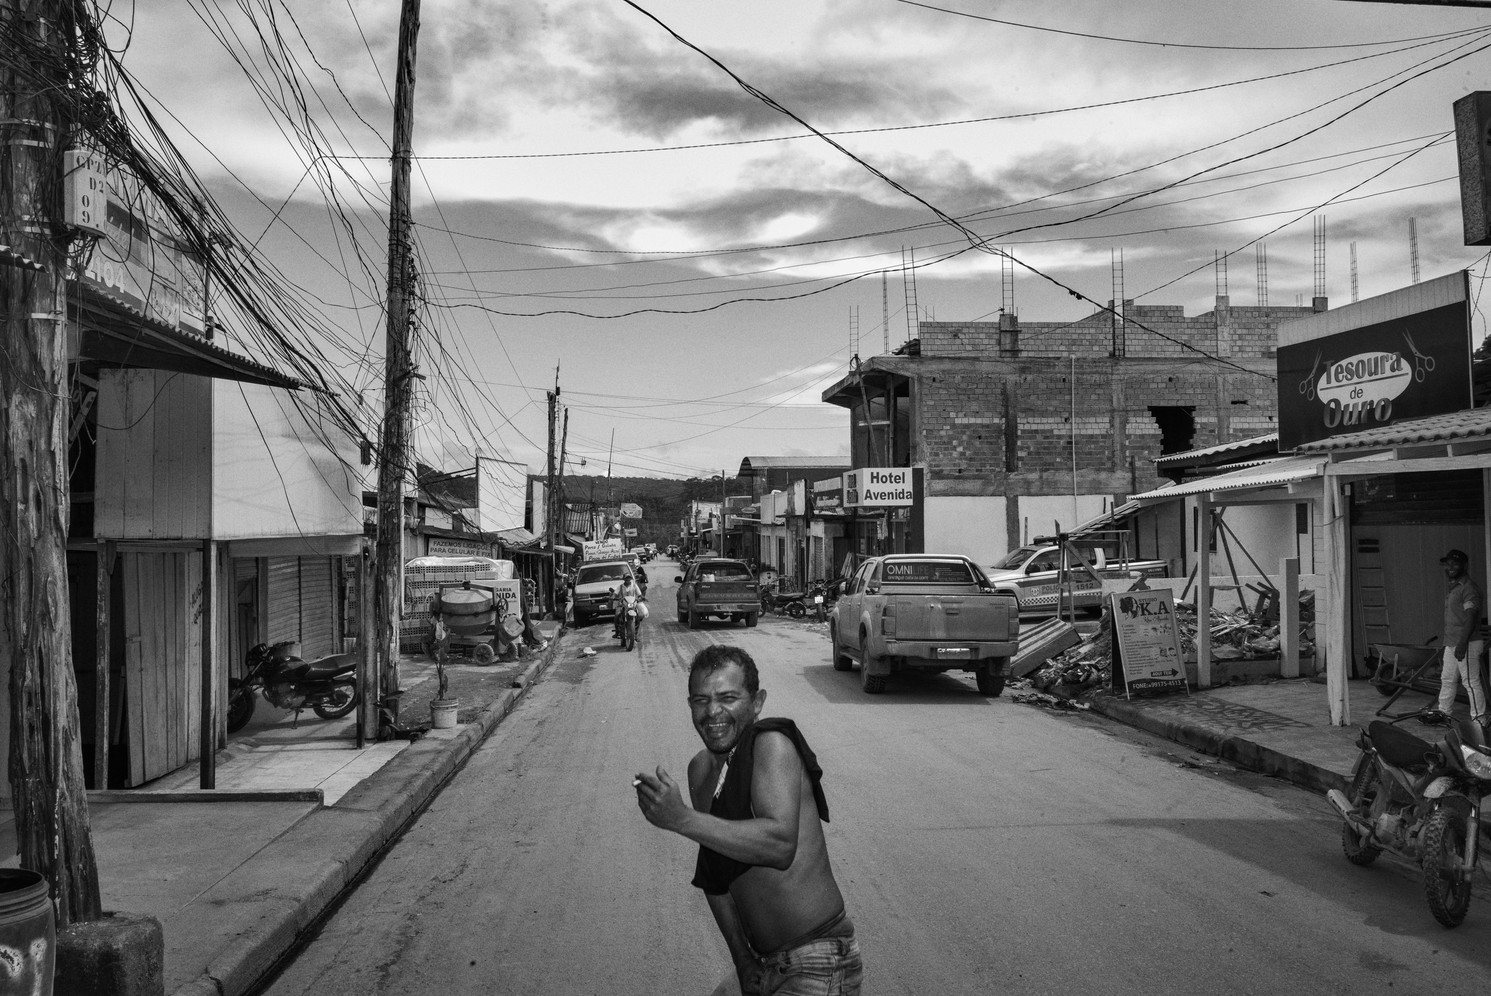 A garimpeiro – wildcat miner - stands drunk in the streets of Crepurizão, a gold mining town in southwestern Pará state. The town serves as a base for miners stay and to take small planes to a number of illegal goldmining sites in the region, including on indigenous lands and protected forest areas. The town's entire economy revolves around illegal gold extraction